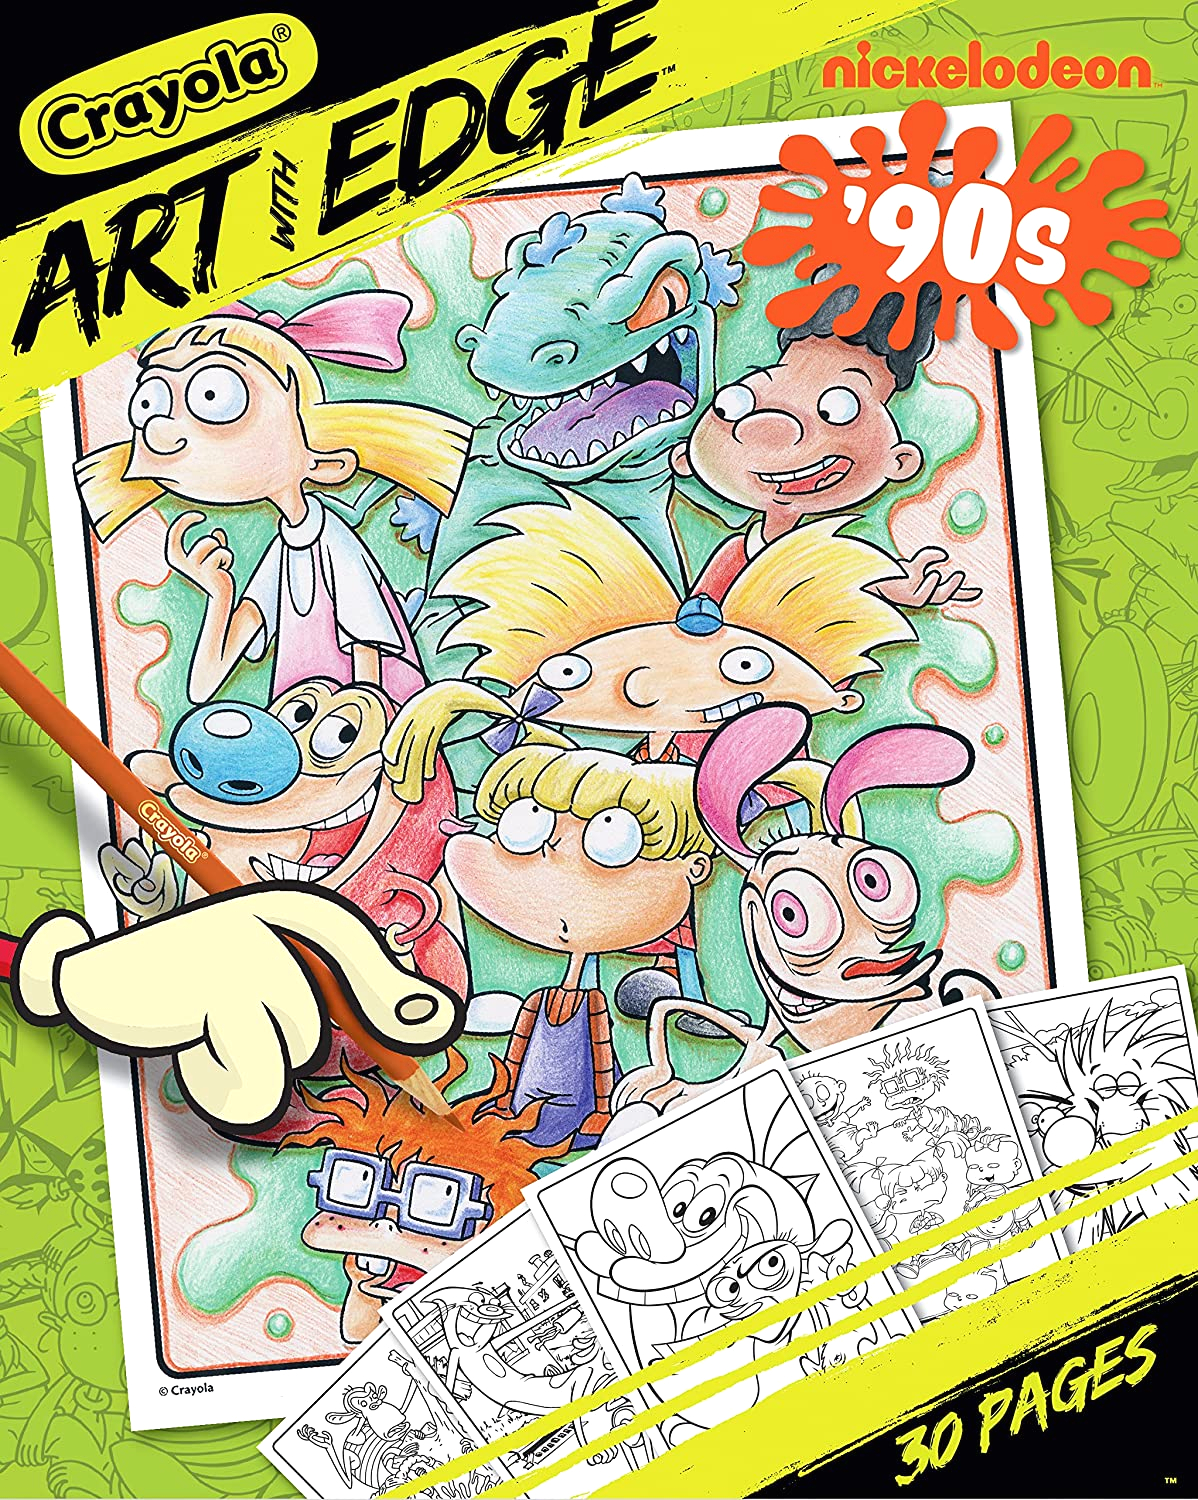 update now only 1 50 crayola art with edge coloring pages for only 2 was 5 50